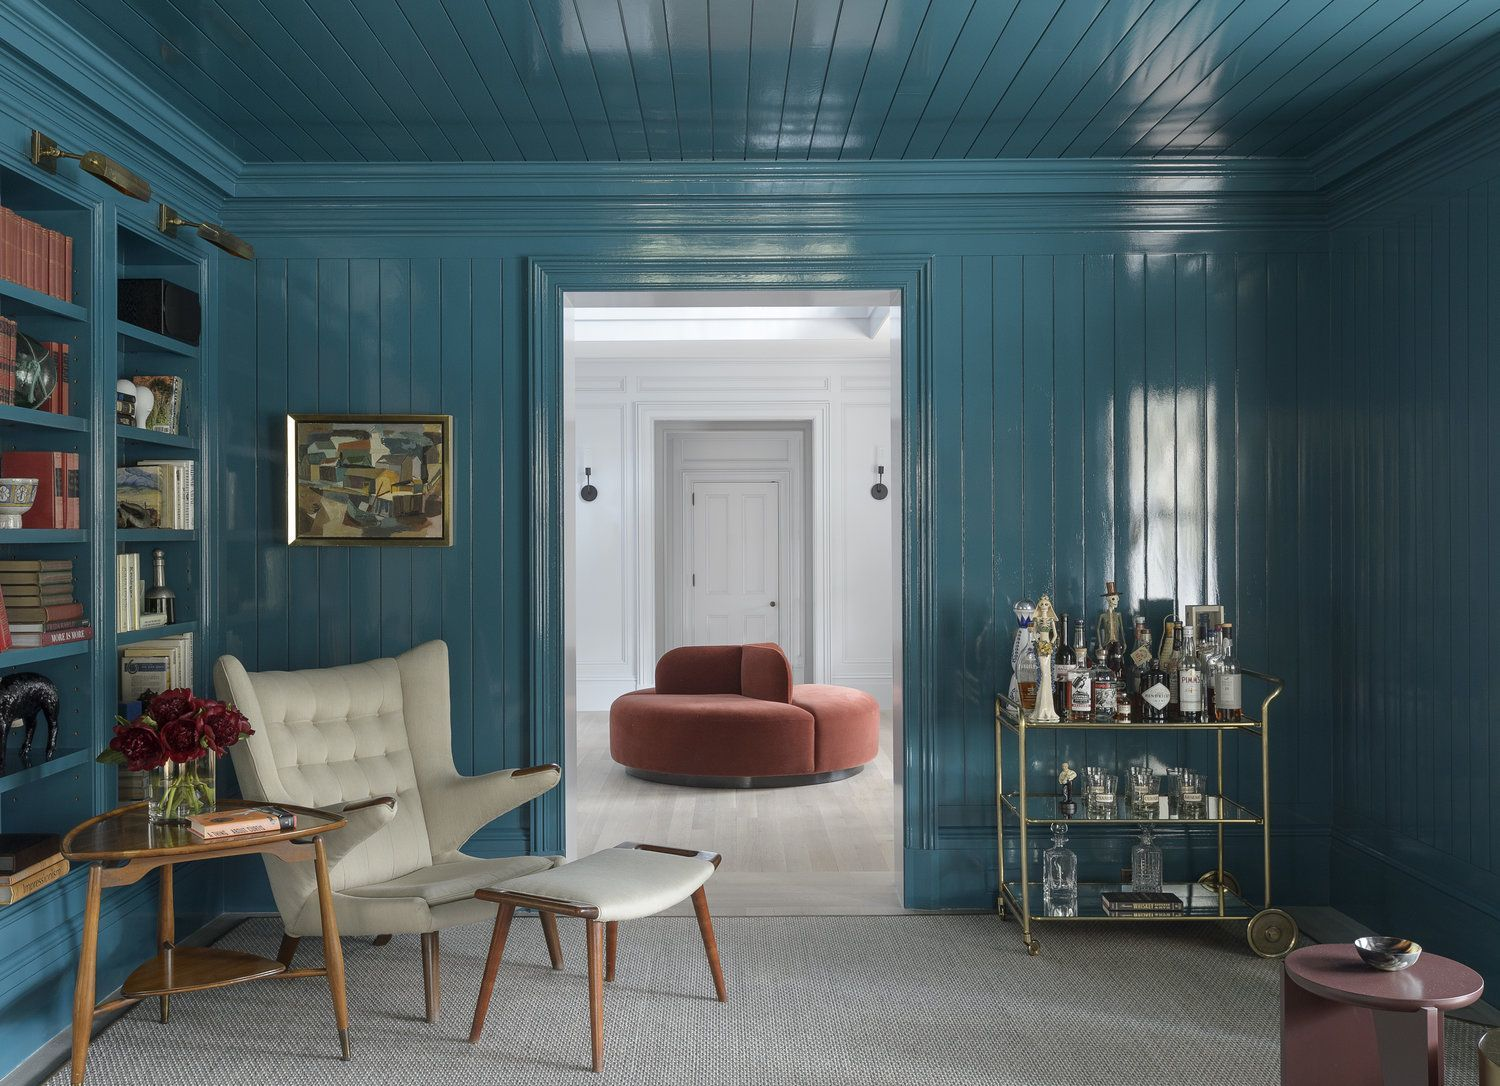 What Color To Paint Paneling 11 Wood Wall Paneling Makeover Ideas How To Update And Paint